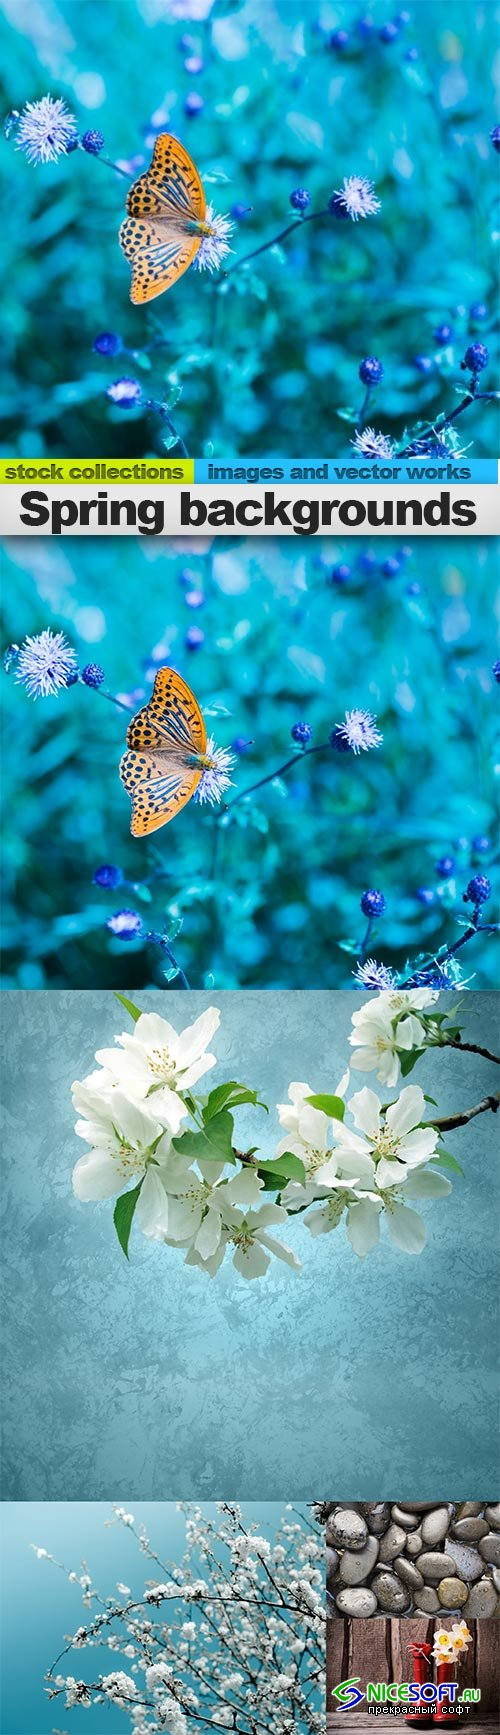 Spring backgrounds, 05 x UHQ JPEG